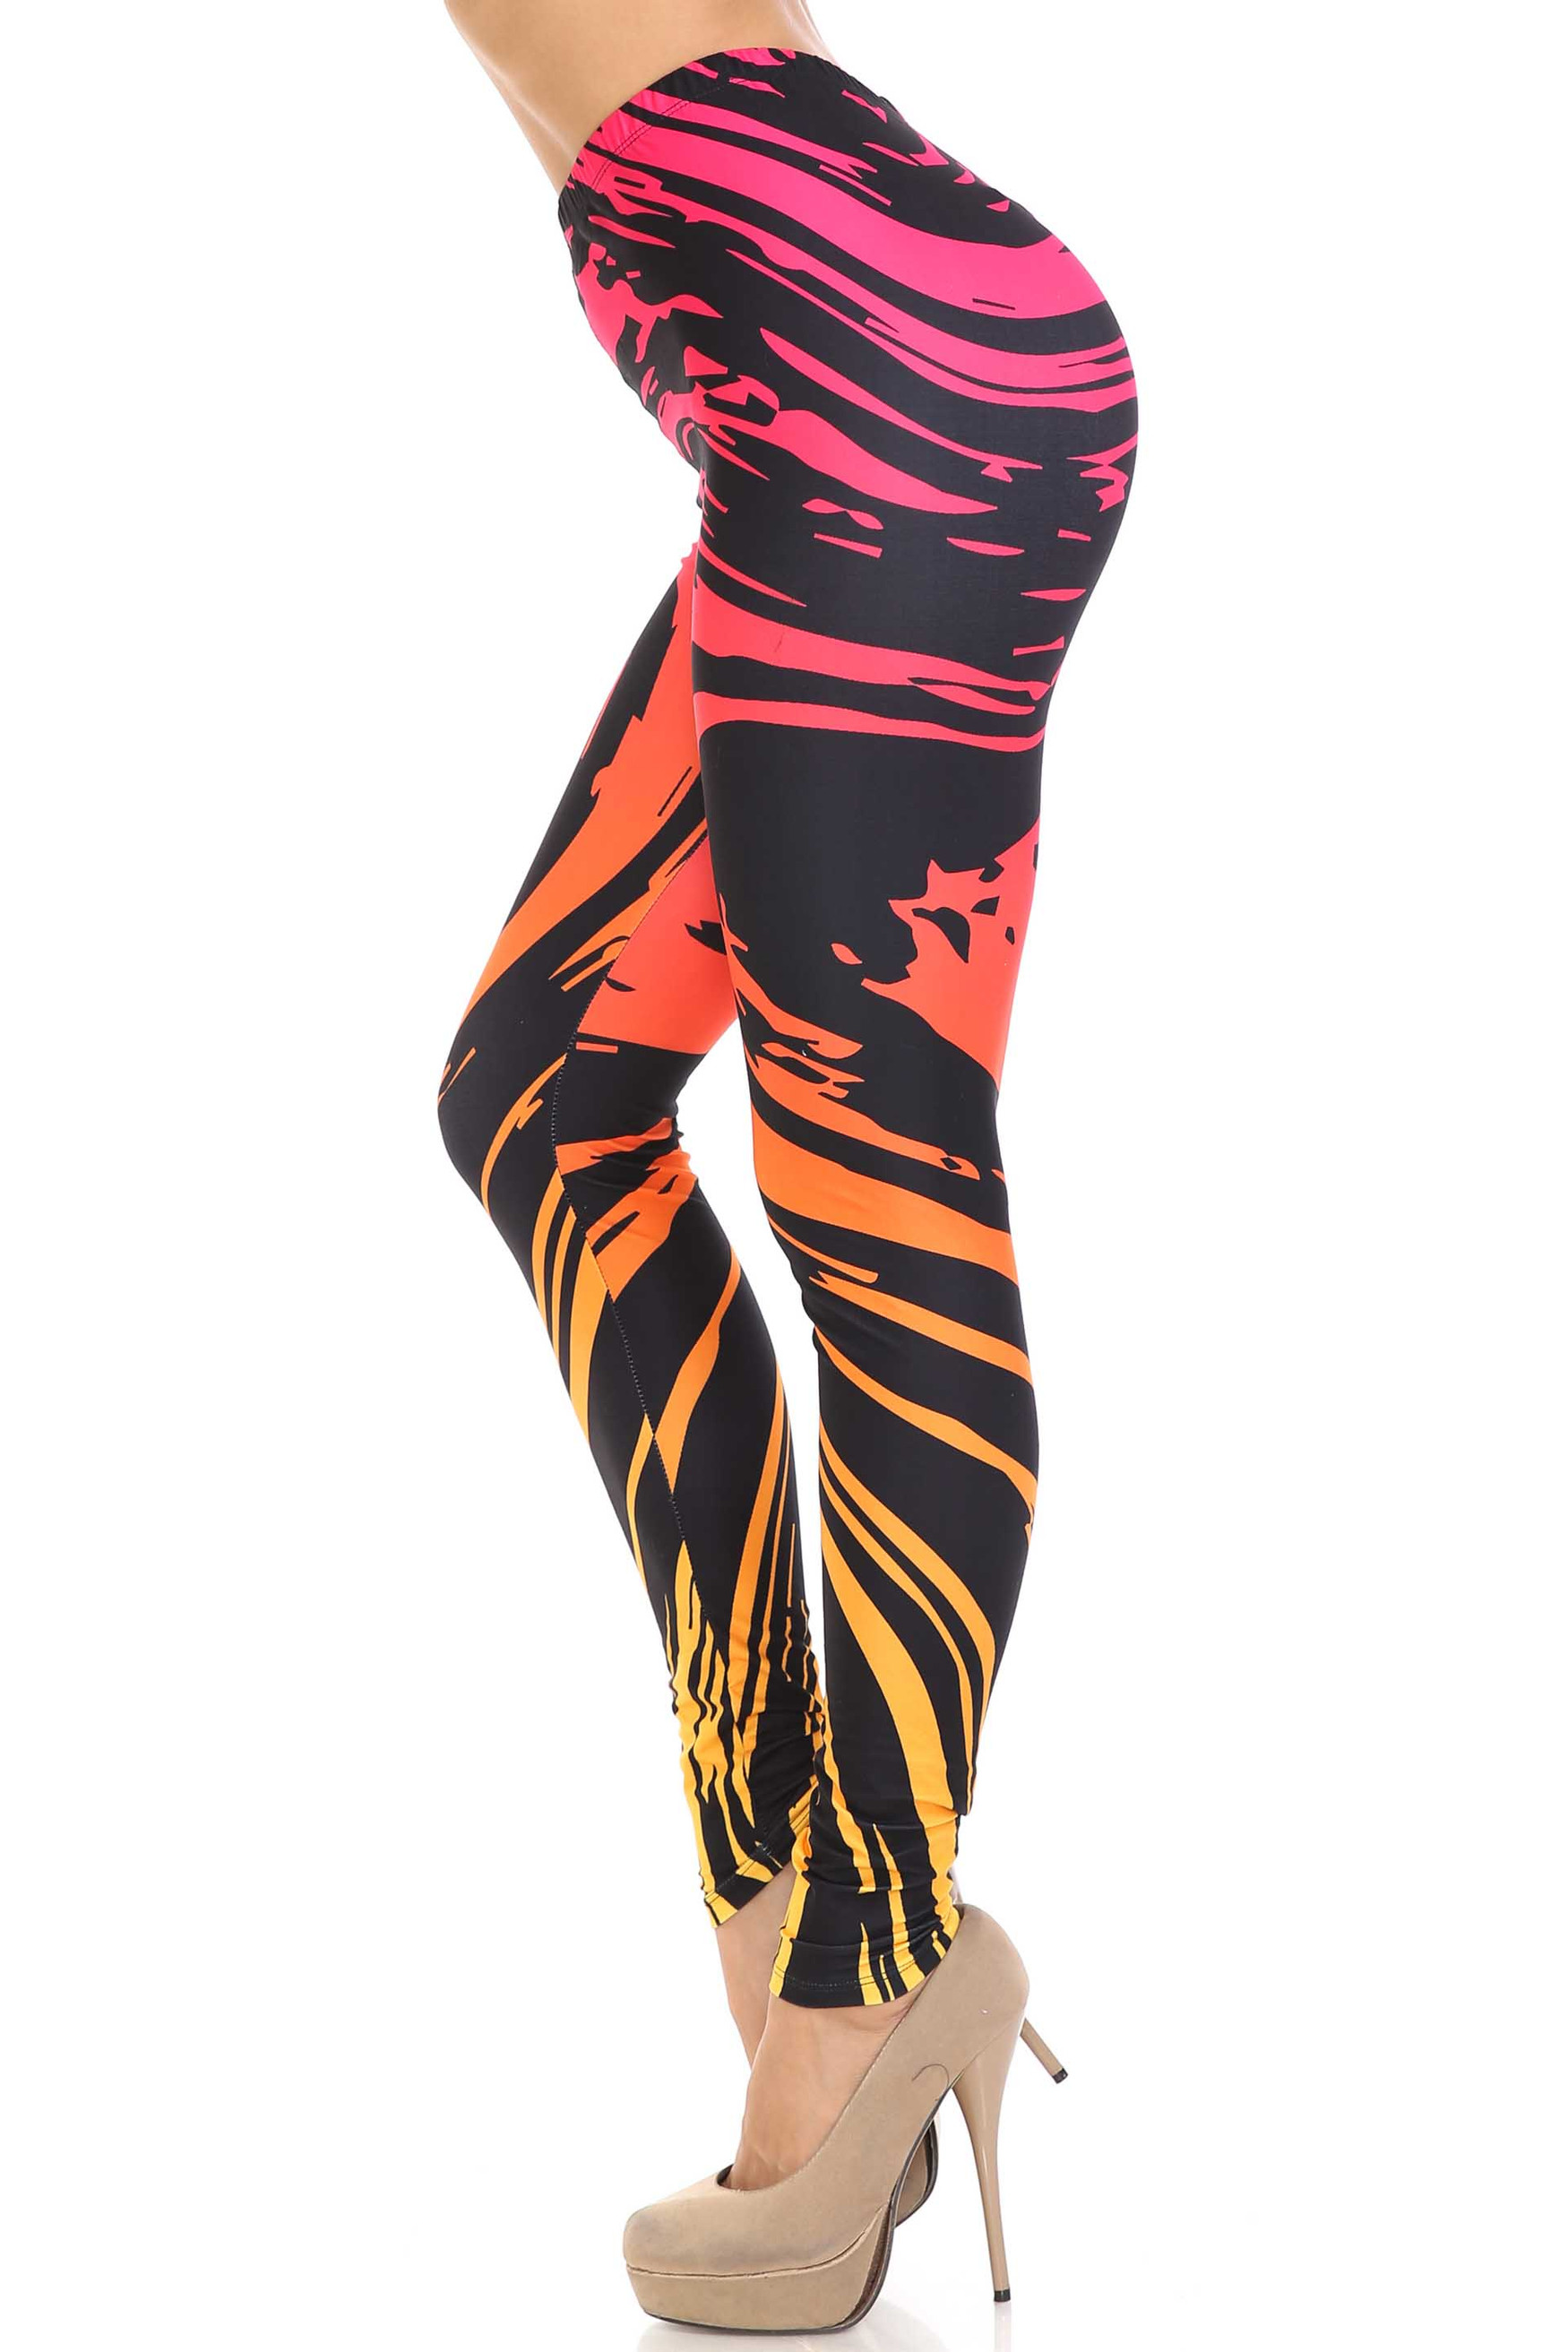 Creamy Soft Ombre Swirling Paint Stroke Plus Size Leggings - USA Fashion™